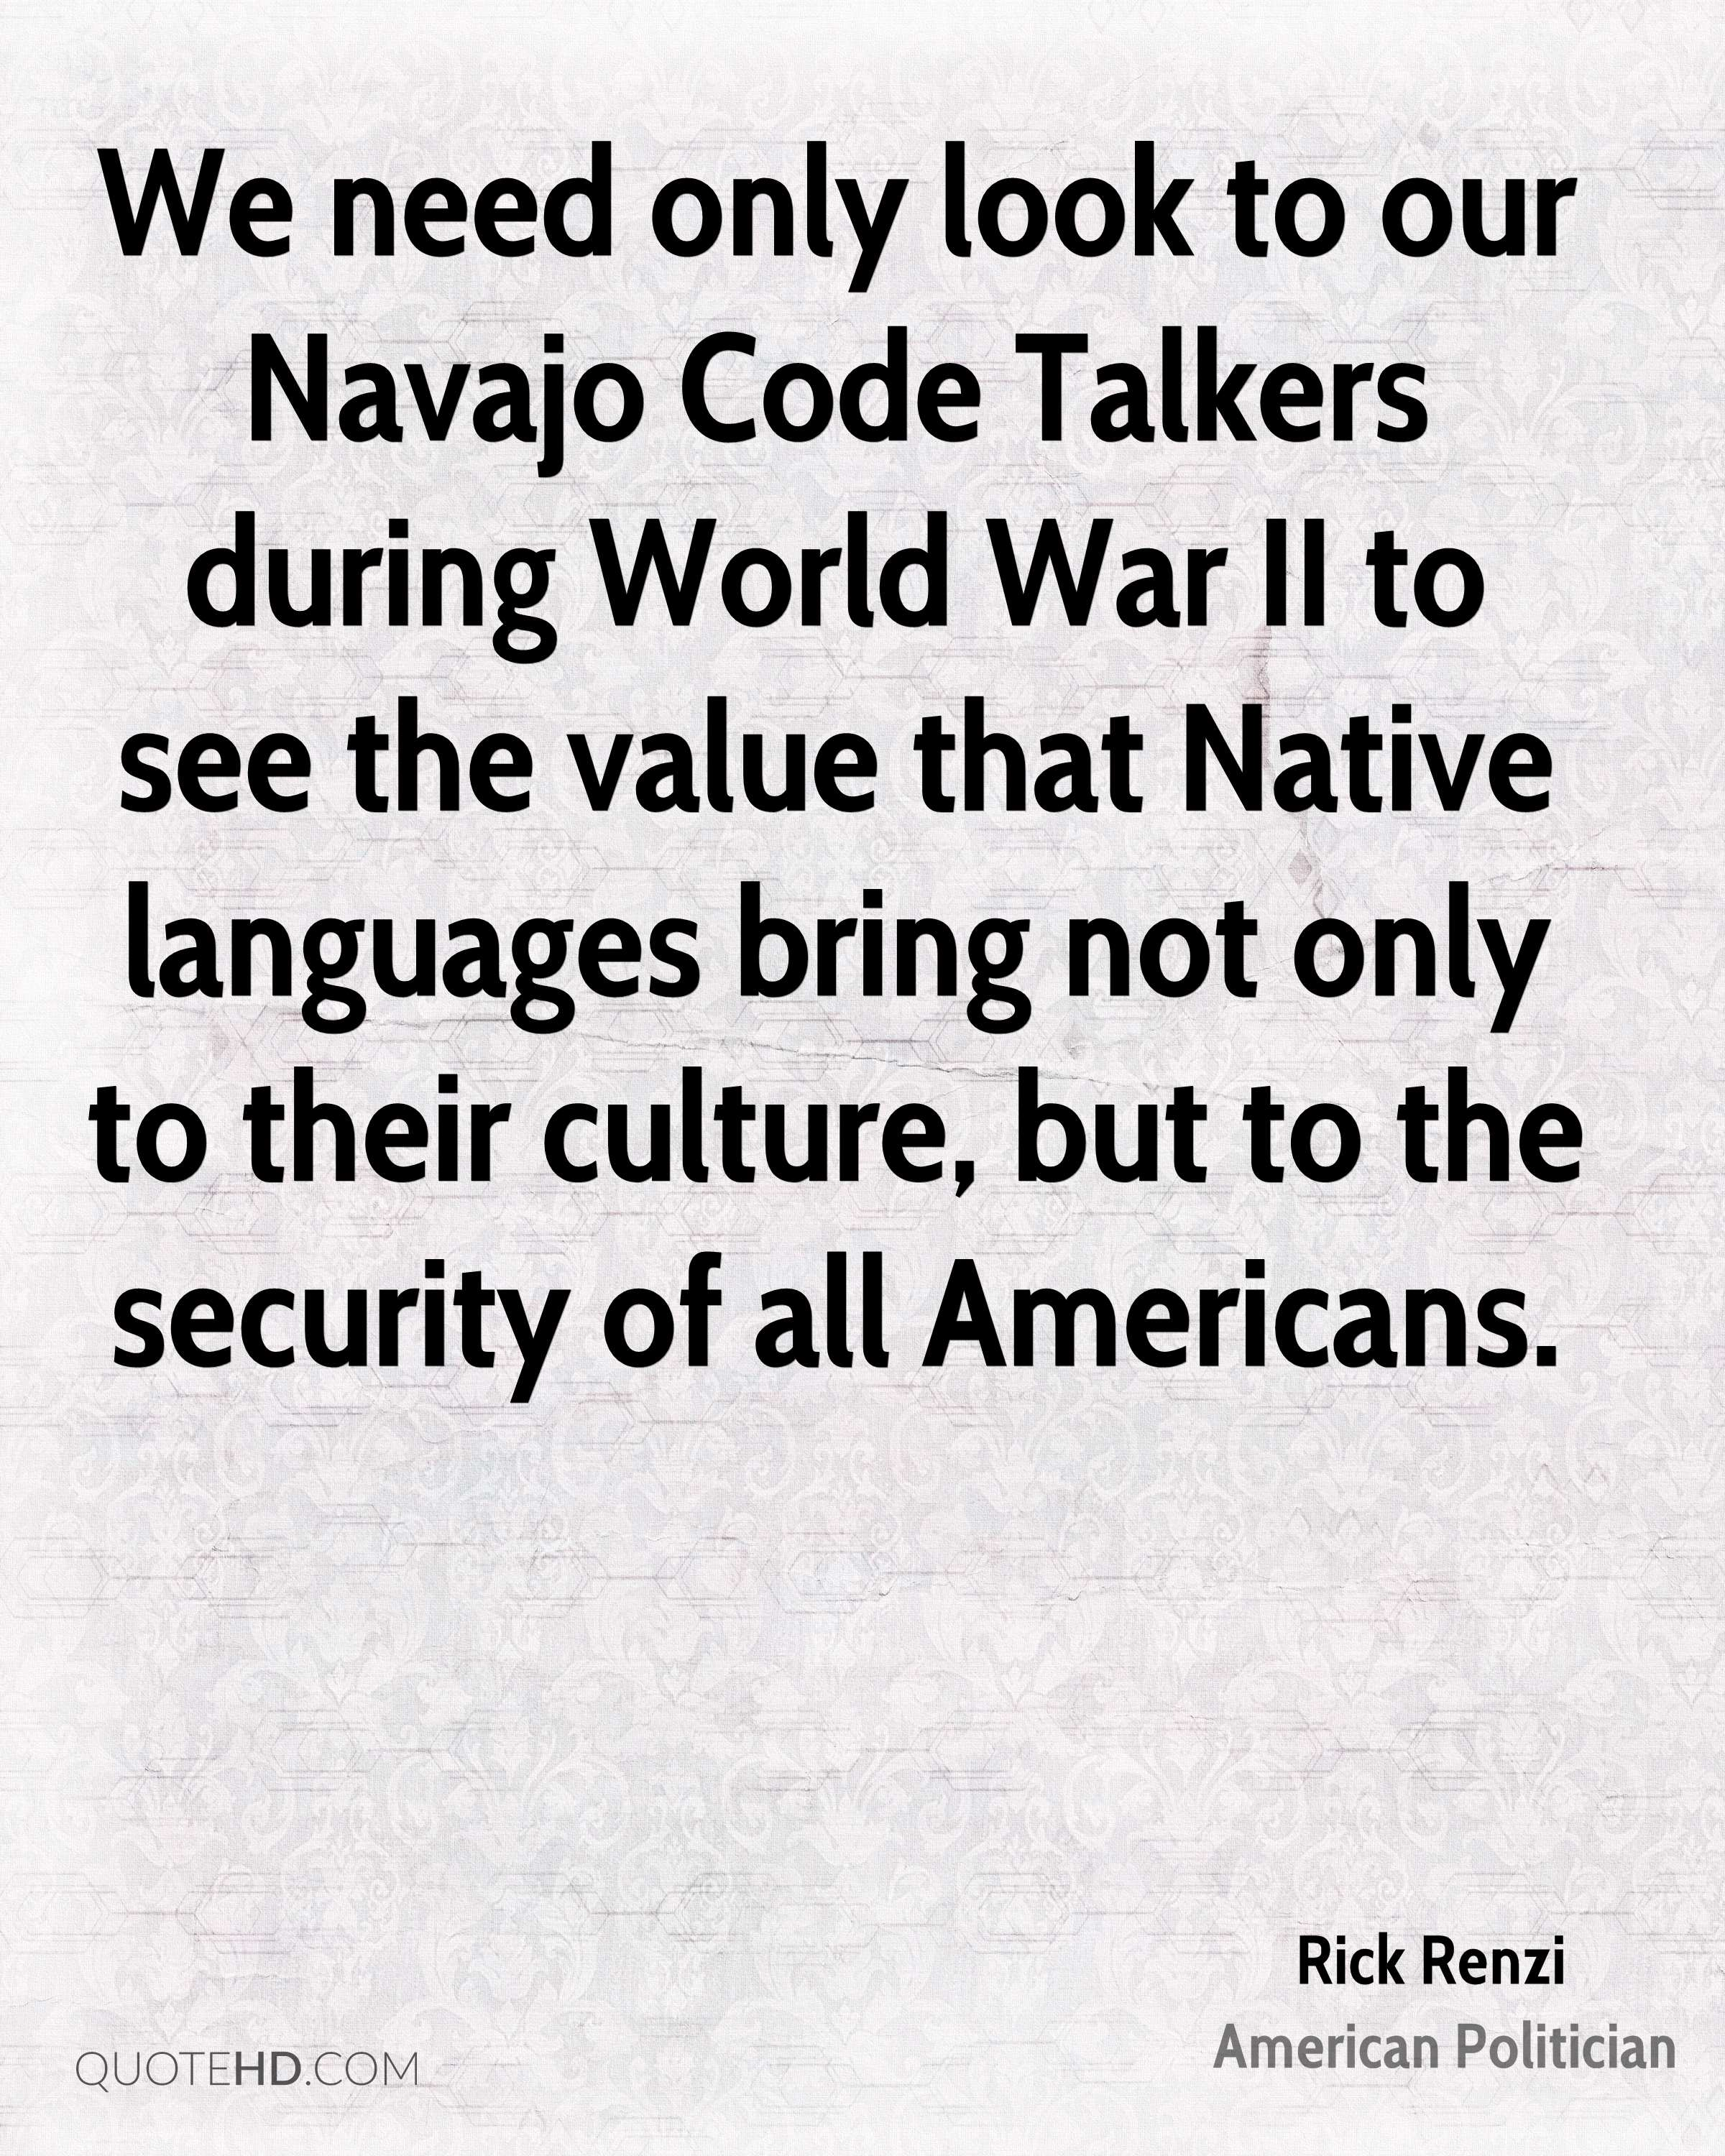 We need only look to our Navajo Code Talkers during World War II to see the value that Native languages bring not only to their culture, but to the security of all Americans.